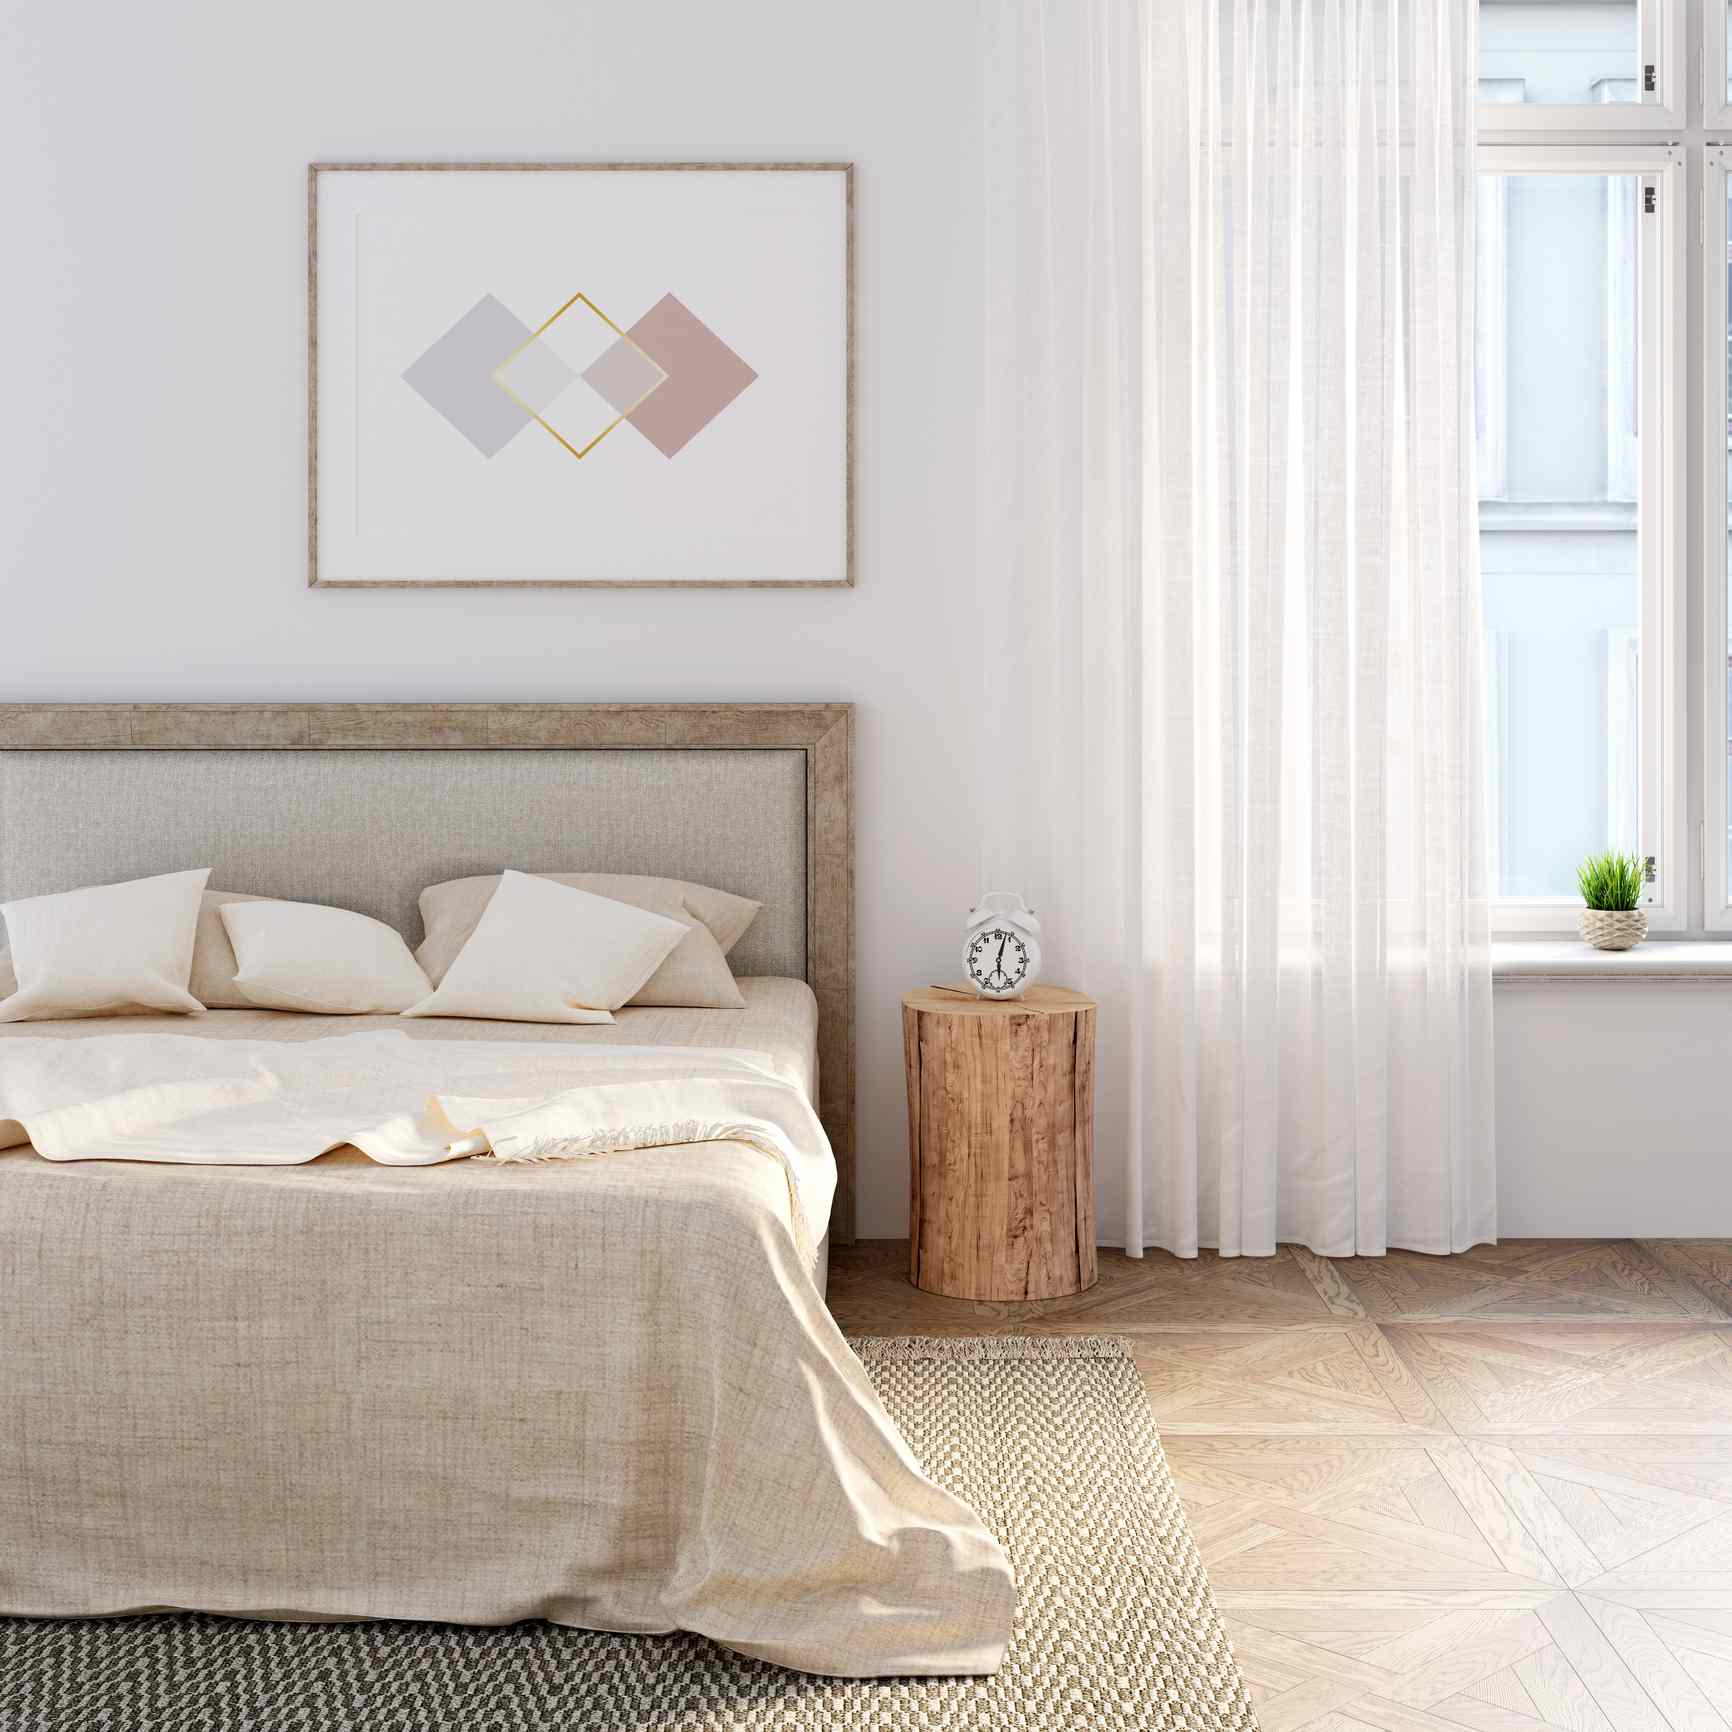 White bedroom with natural linen on the bed, the horizontal poster above the headboard. An alarm clock stands on a stump between a bed and a window with a linen curtain